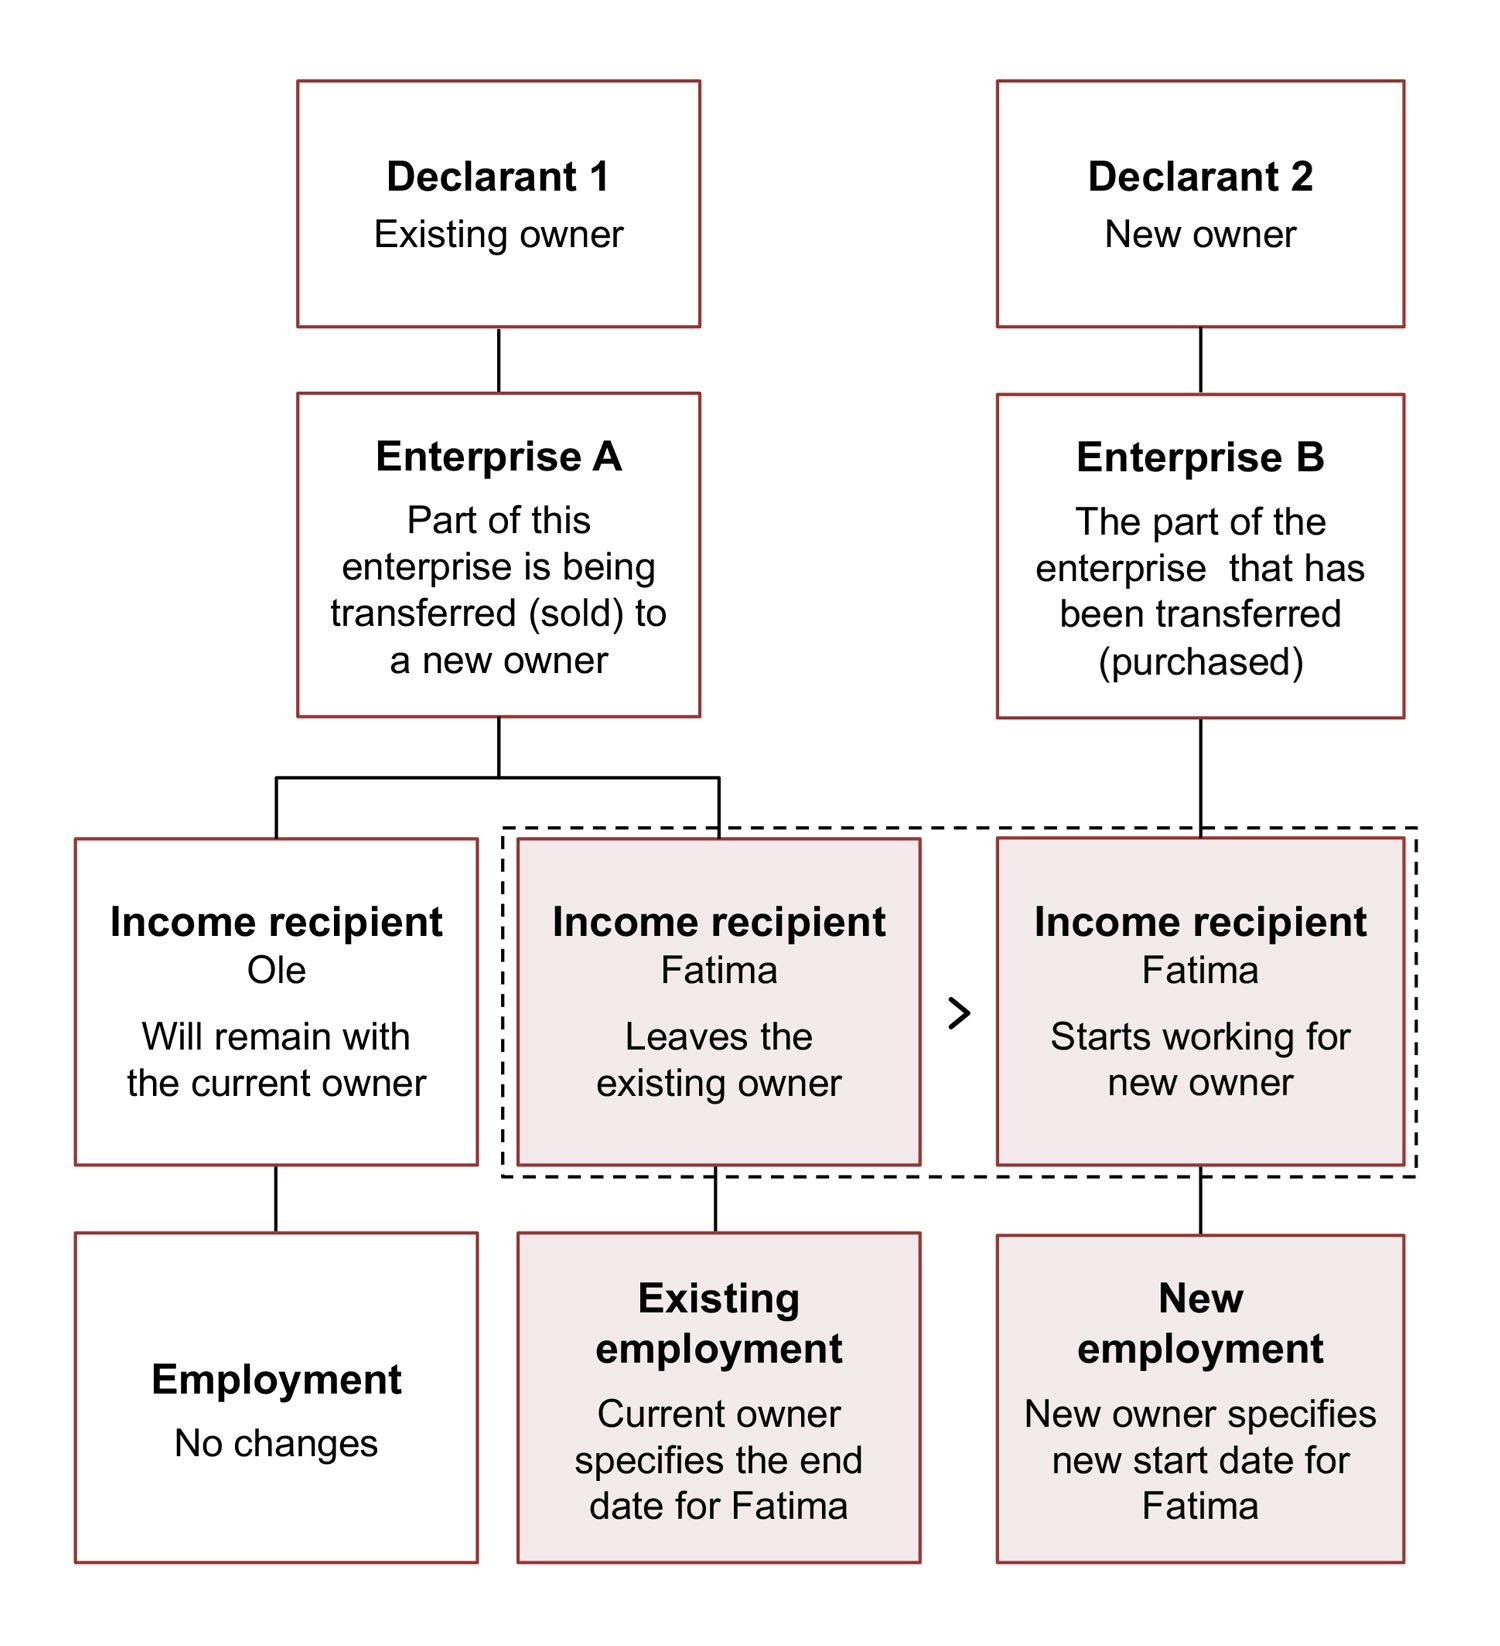 Diagram. The current owner specifies the end date for Fatima's existing employment. The new owner specifies Fatima's new employment with a new start date. The text in the article explains this in more detail.